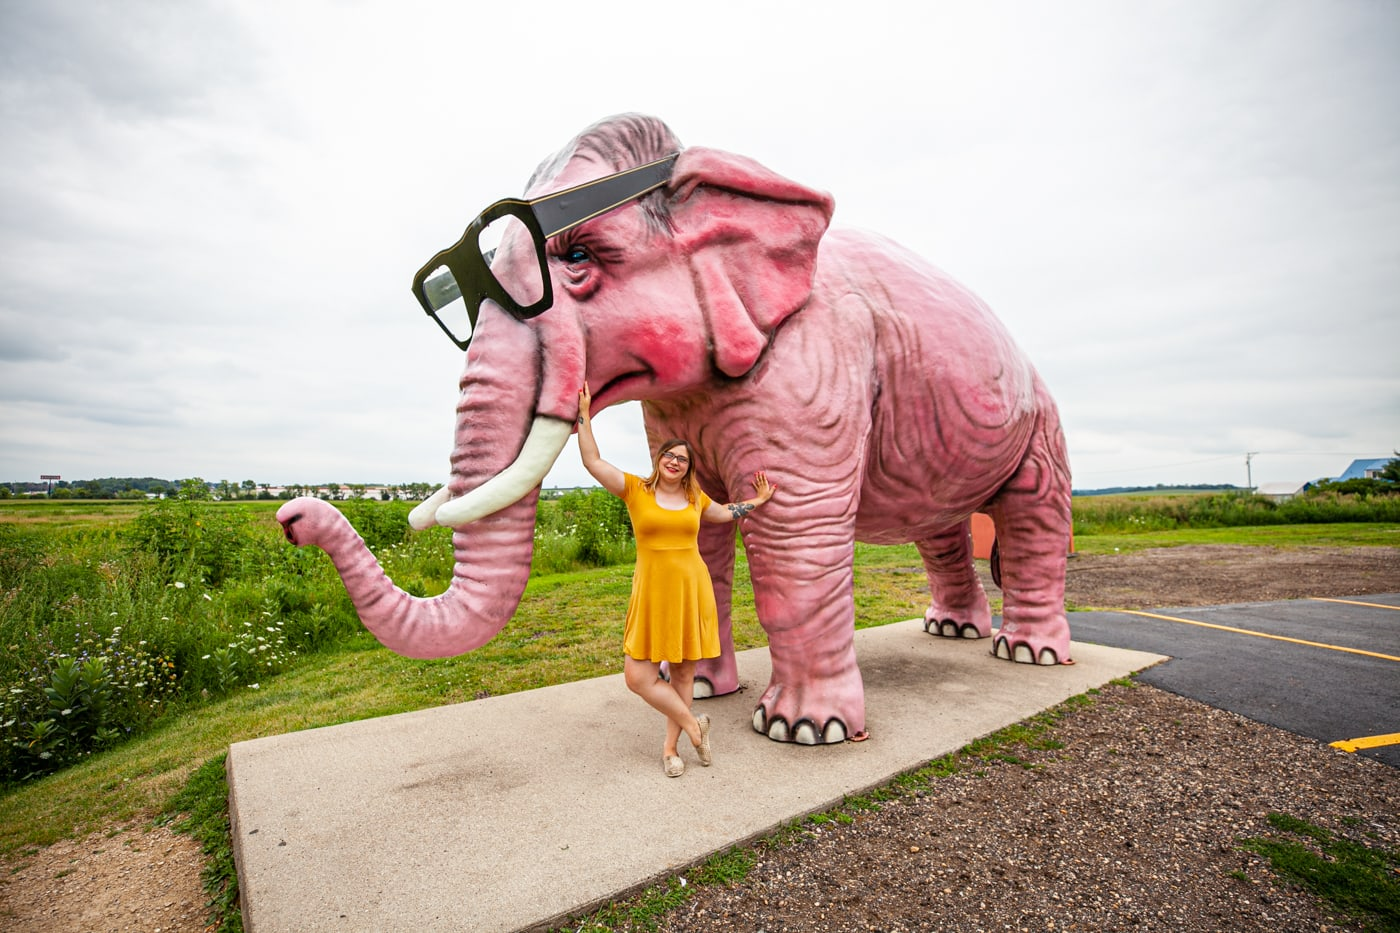 Pinky the pink elephant in DeForest, Wisconsin